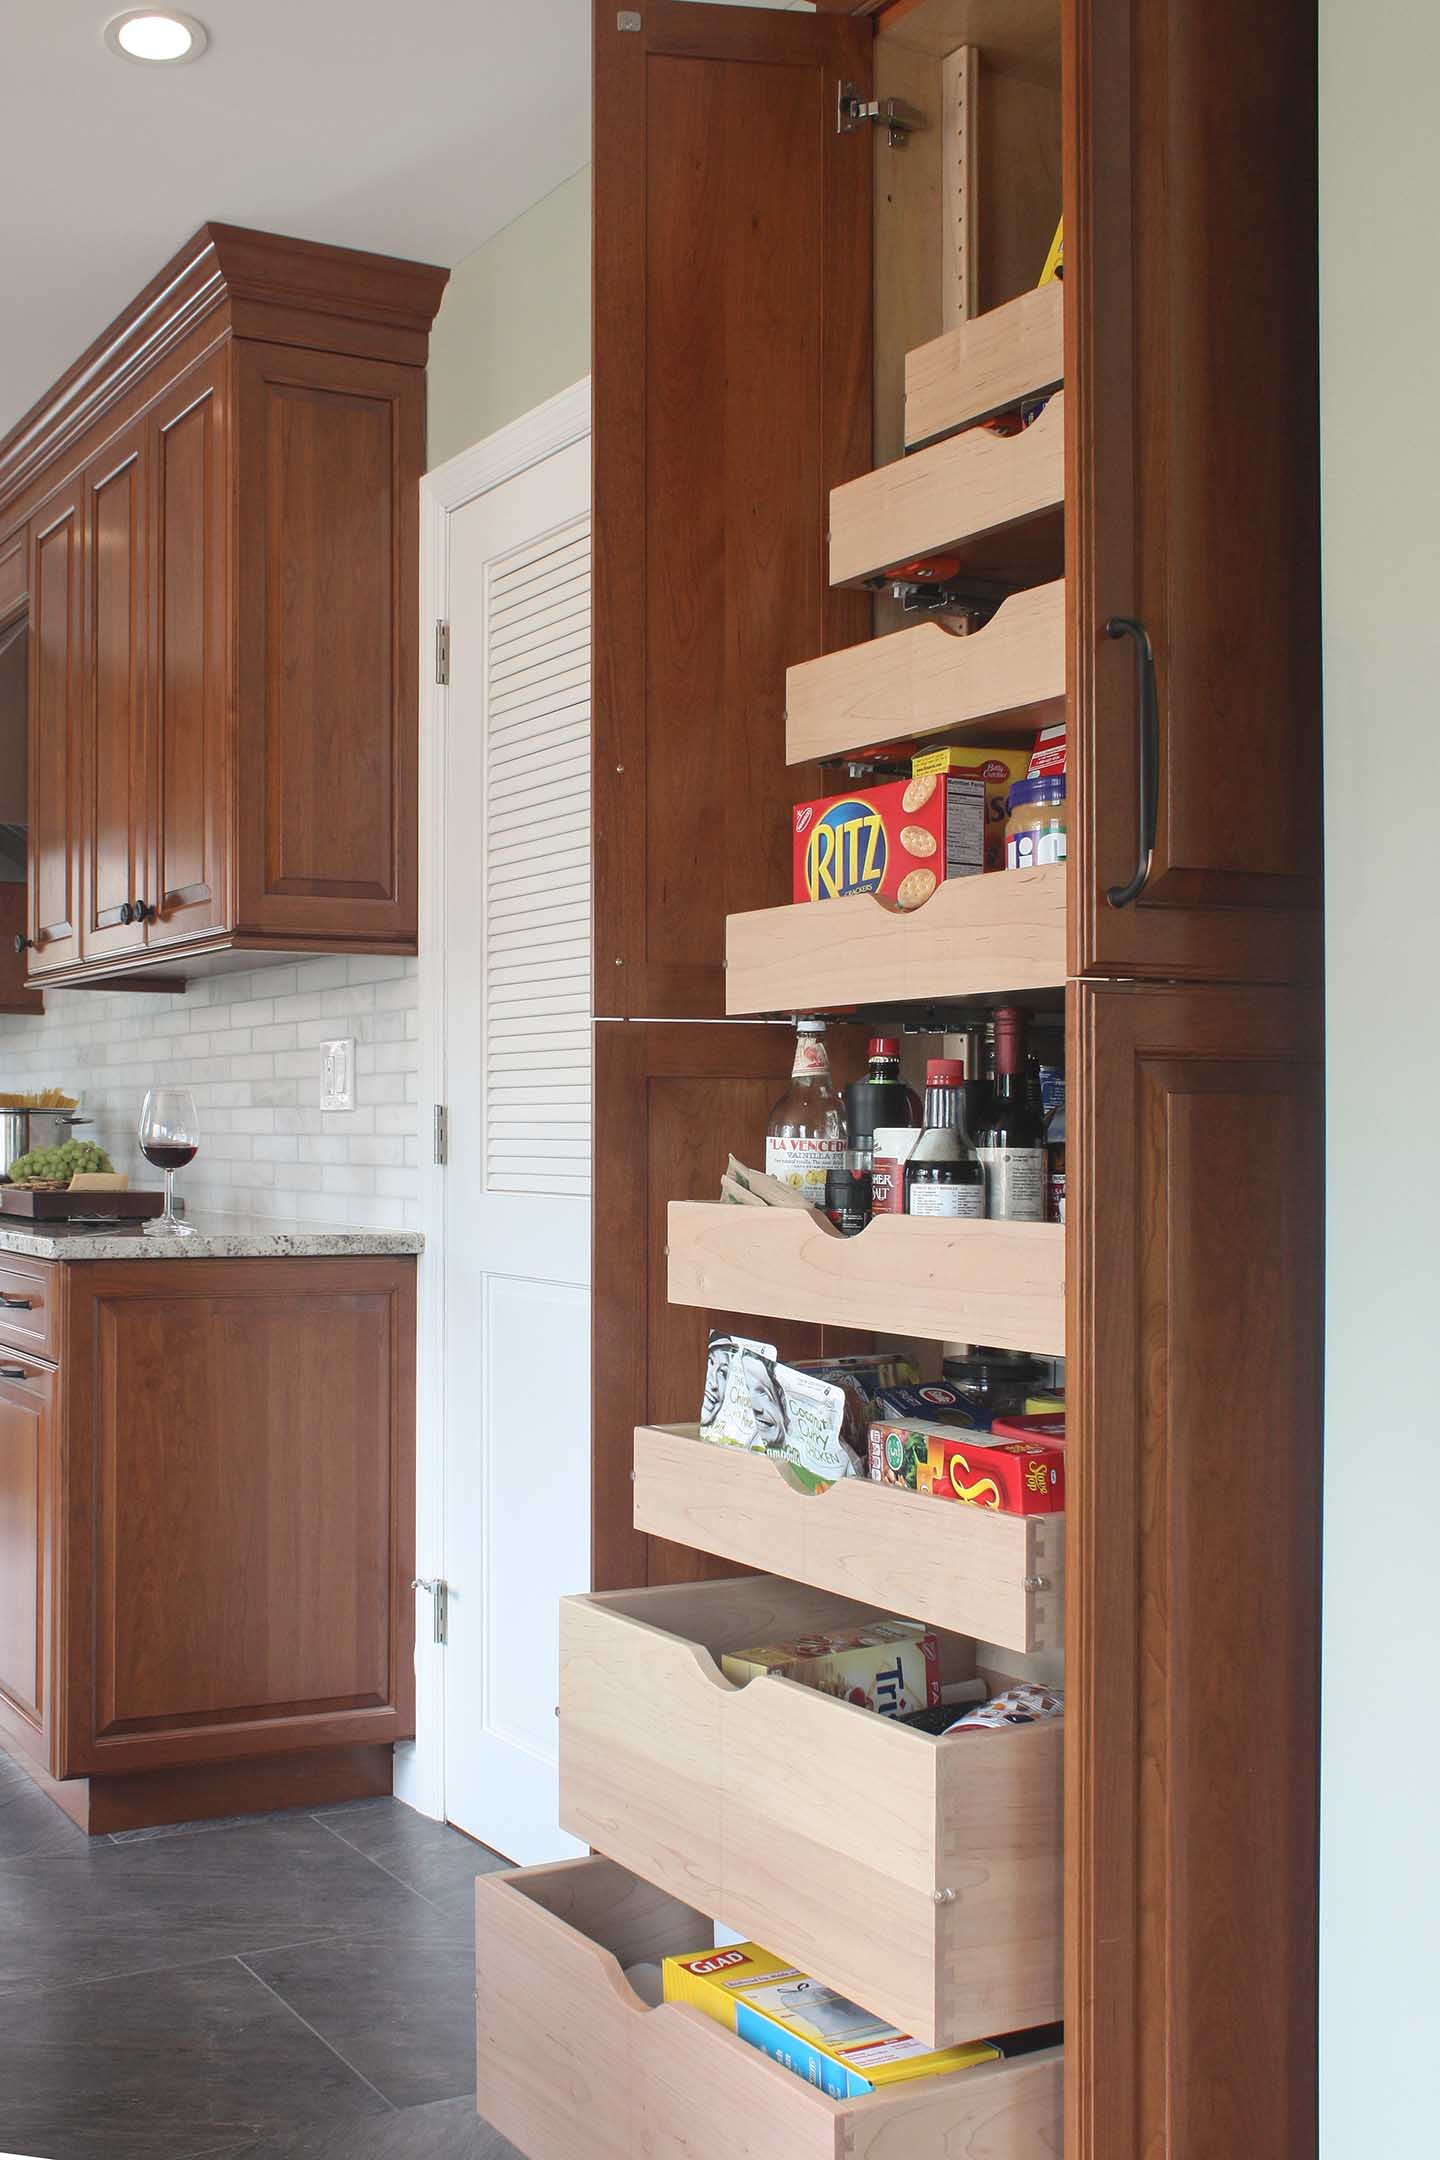 kitchen pantry designed by Joan Bigg indoor and outdoor kitchen design cortlandt manor westchester county ny